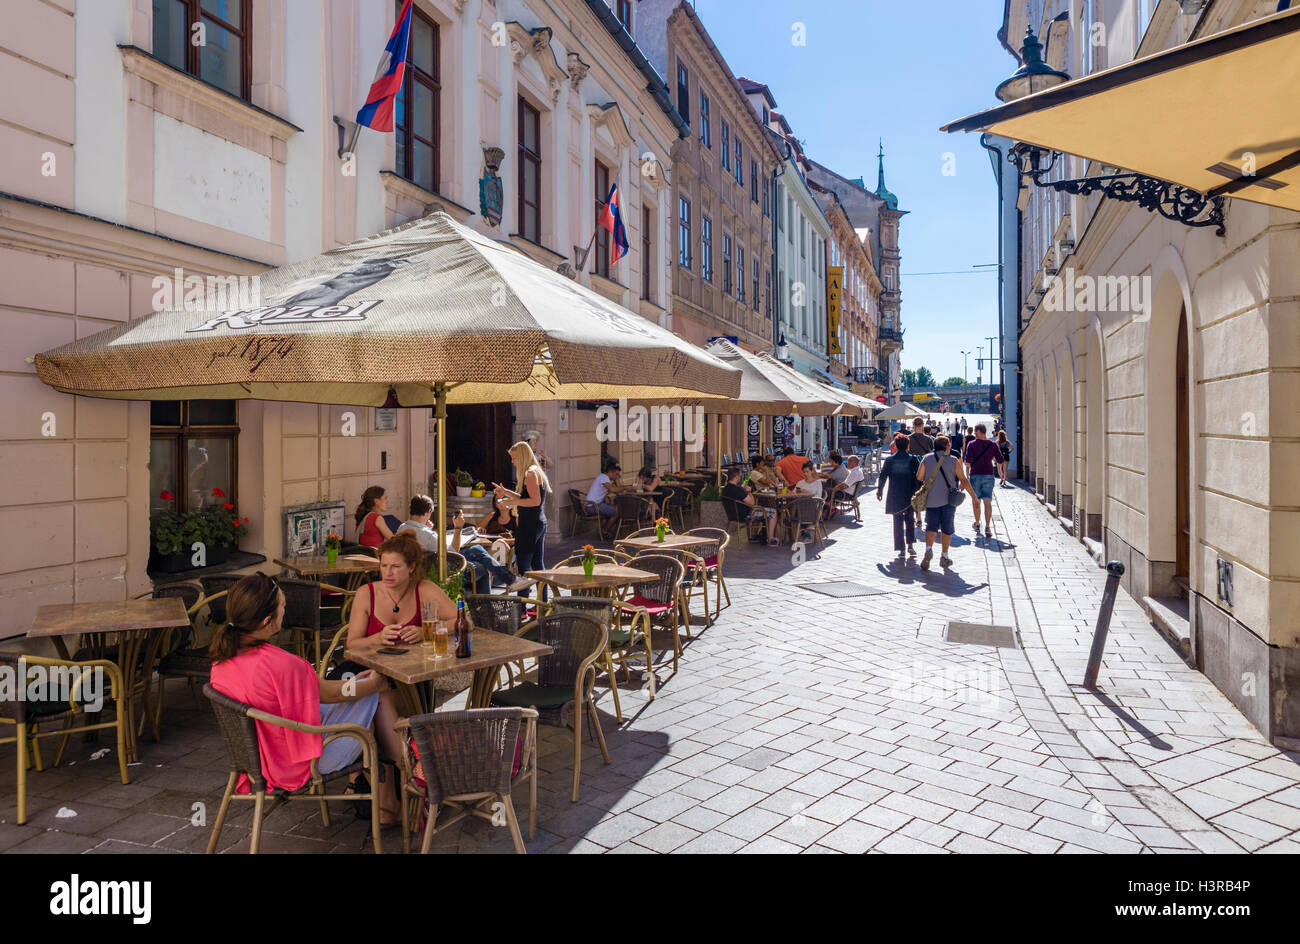 Cafes and bars on Panská  in the old town, Bratislava, Slovakia - Stock Image